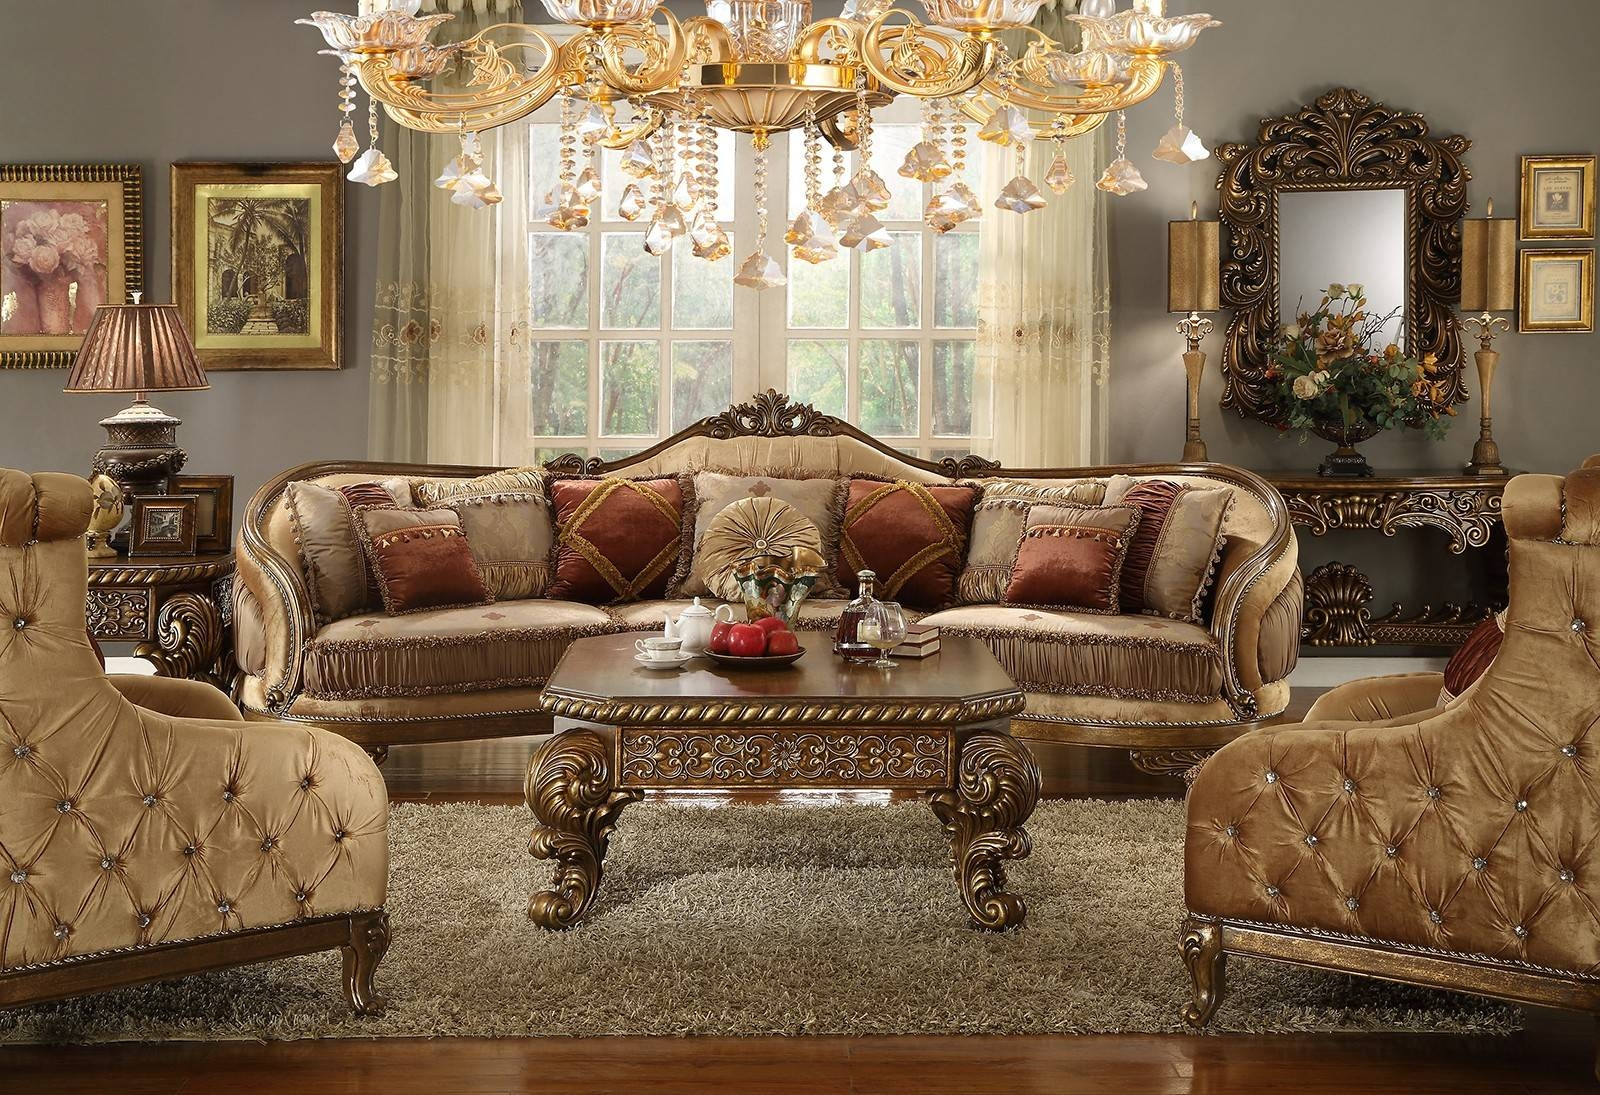 Contemporary & Luxury Furniture; Living Room, Bedroom,la Furniture intended for European Style Sofas (Image 6 of 30)